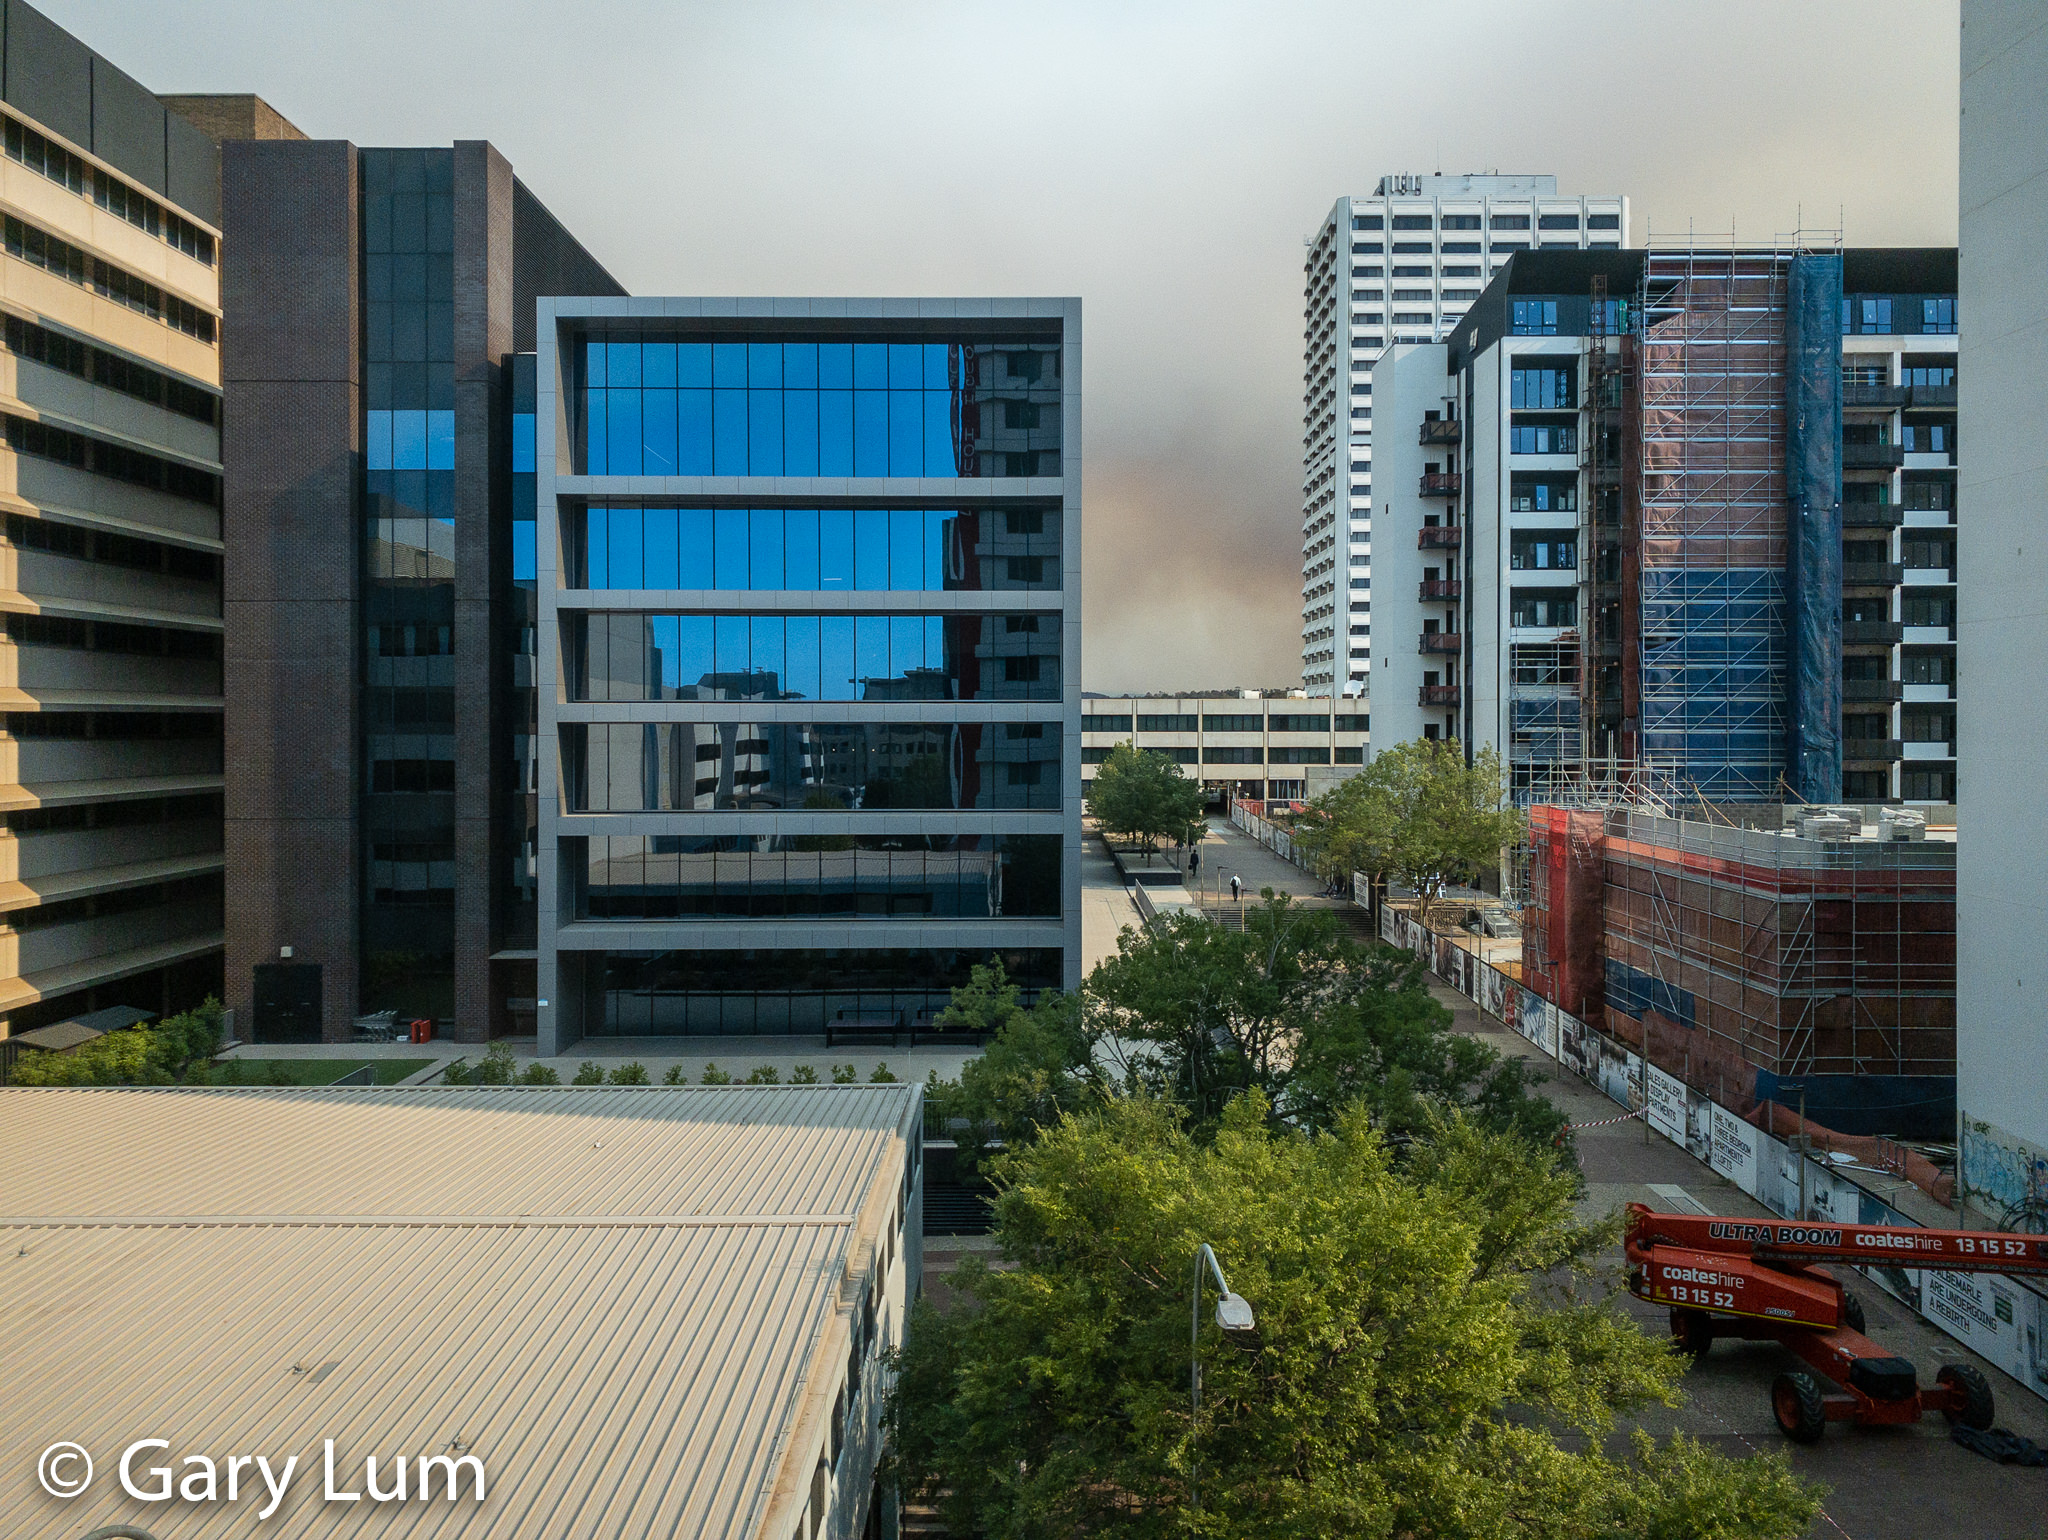 View from a window at work. Welcome to Canberra, the world's most liveable city. #bushfires #smokehaze Gary Lum